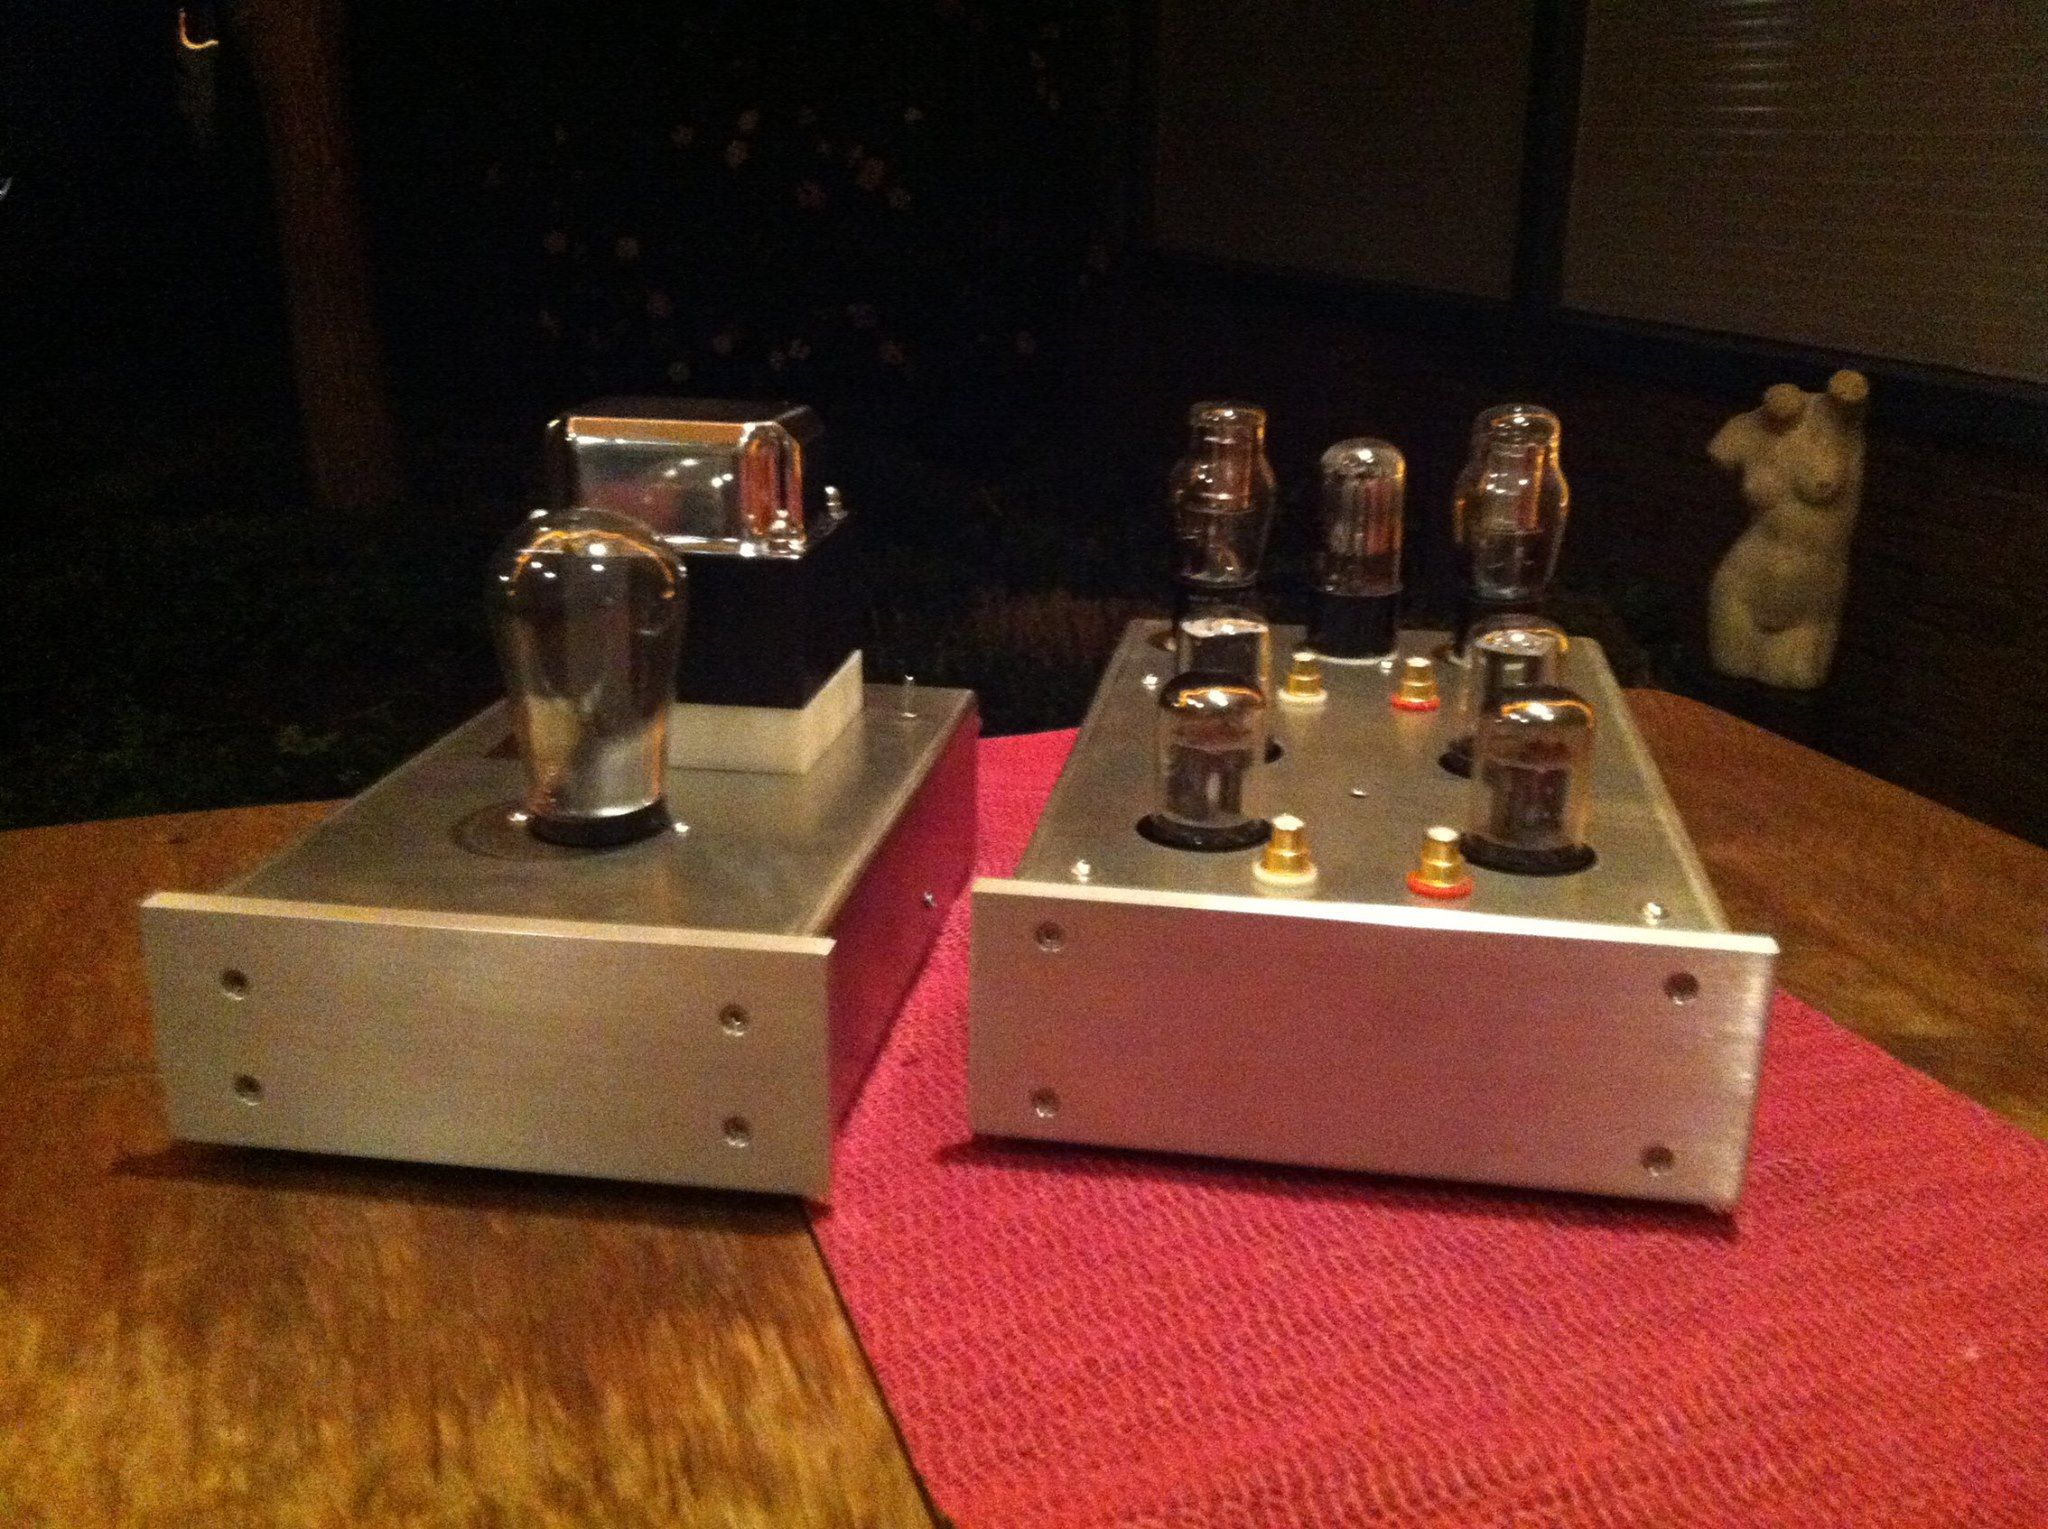 DSA Purist 6SL7 6SN7 Phono Stage Handmade By Electronics For The Music Enthousiast Dirk Sloos